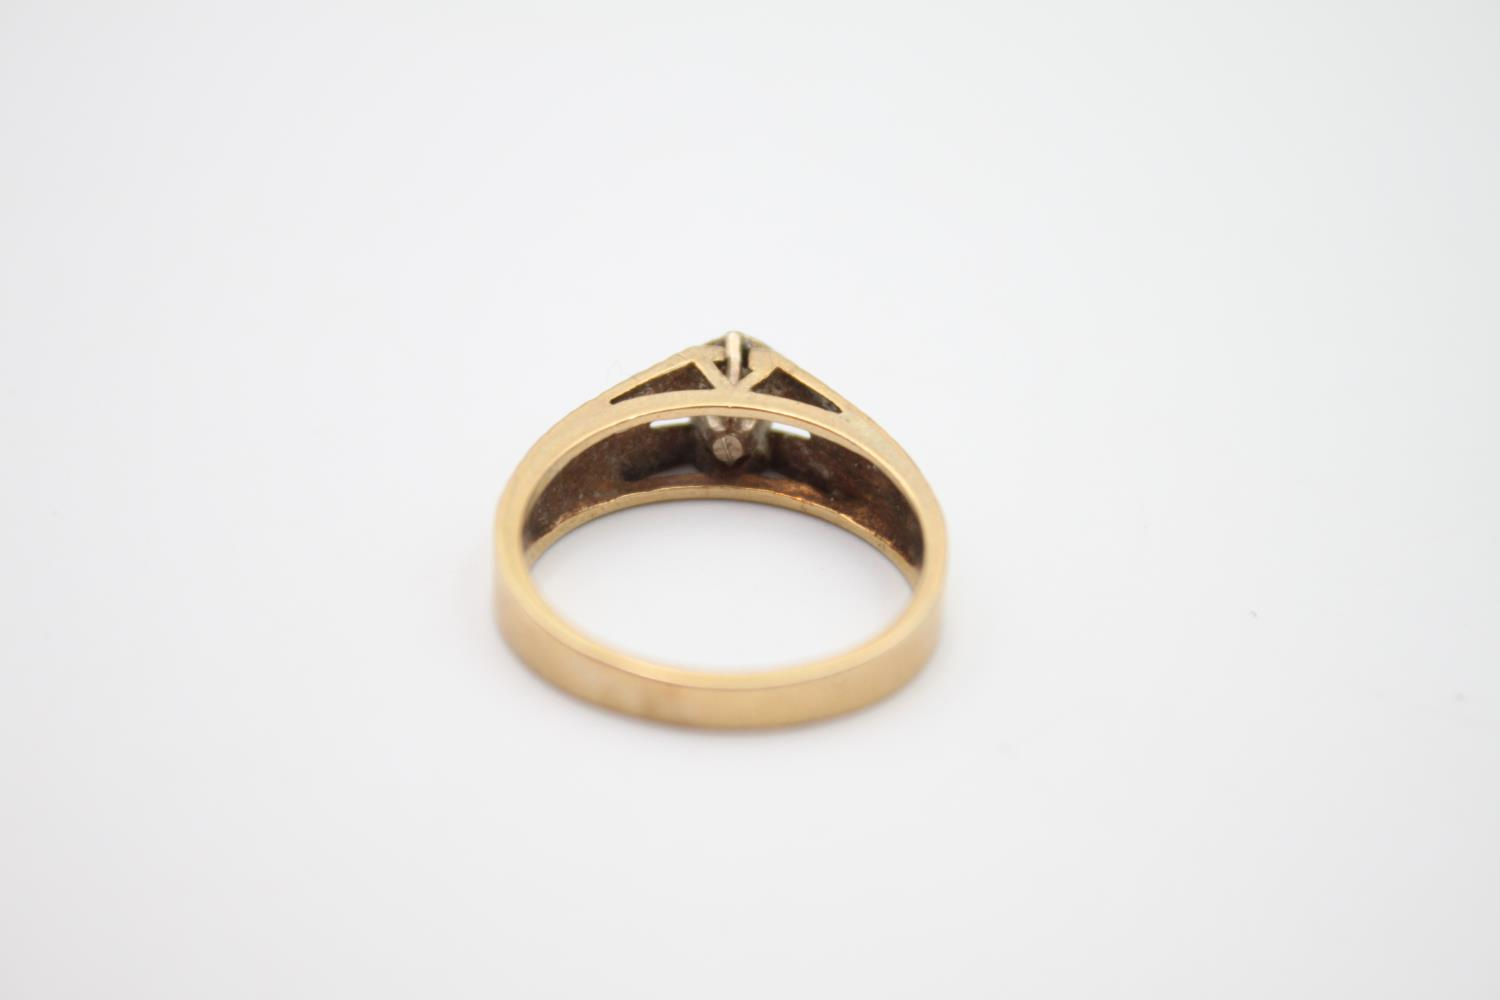 9ct gold textured diamond solitaire ring 3.2g Size M - Image 4 of 5